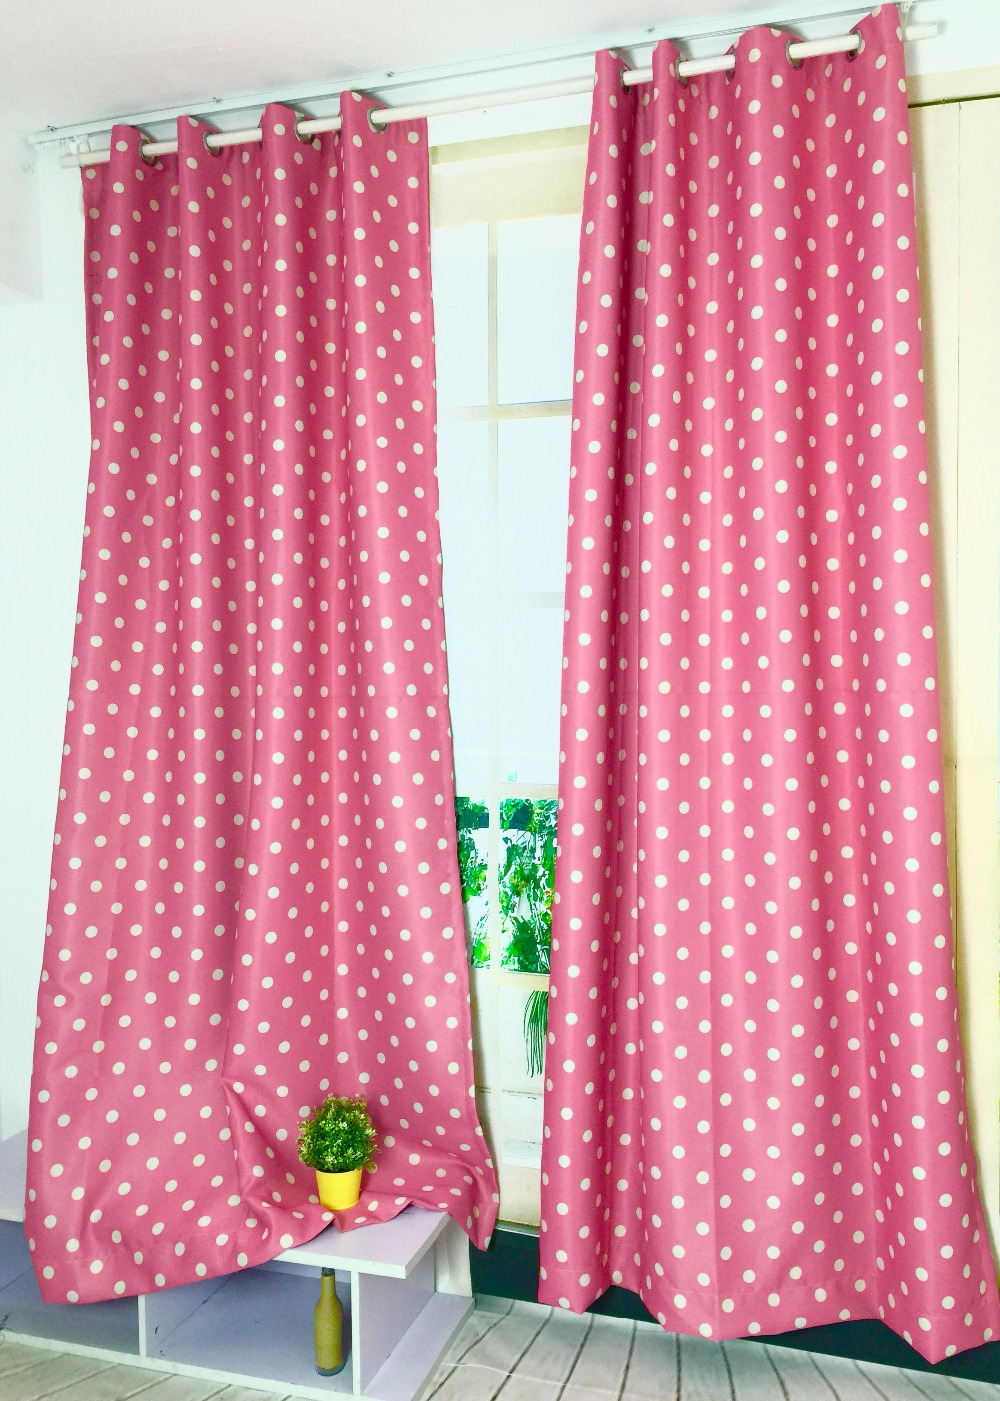 Pink bedroom curtain design - New Dots Shade Cloth Curtains Pink Color With White Dots Curtains Blue Curtains For Bedroom And